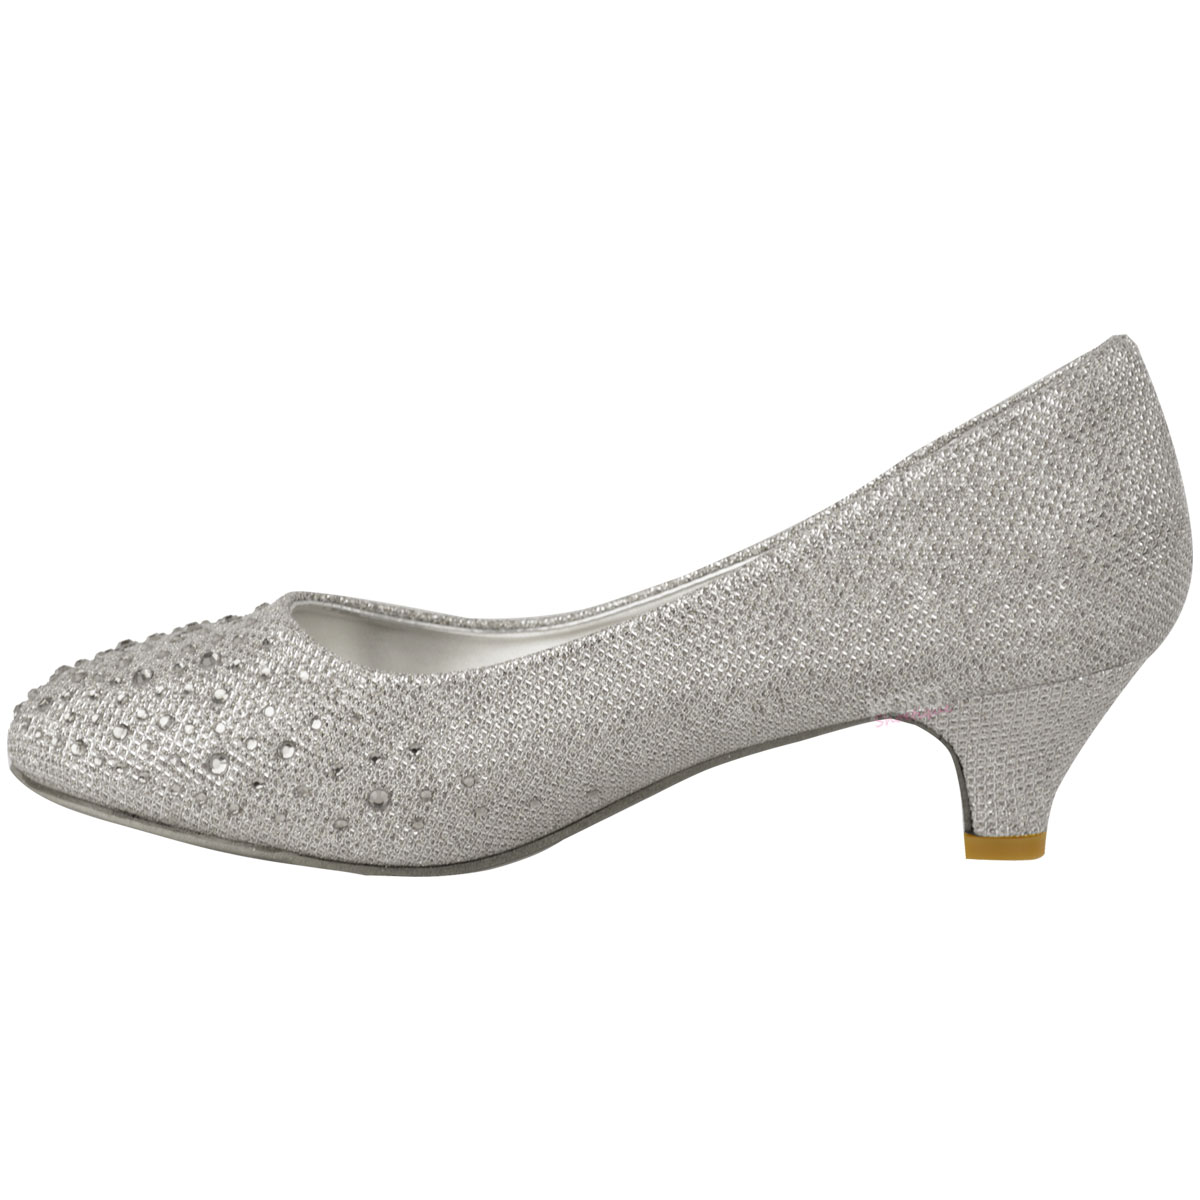 Womens Evening Shoes Australia